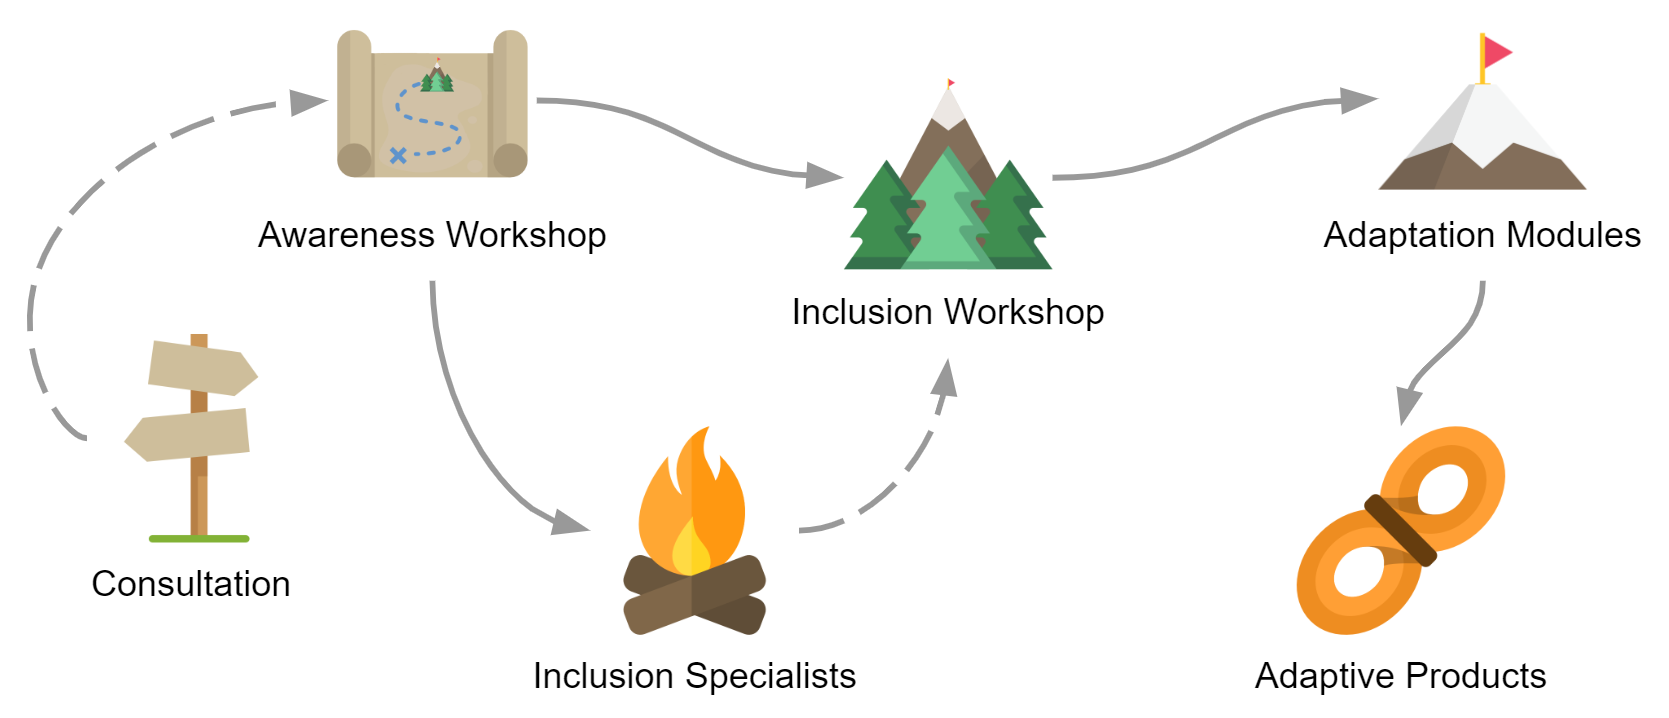 Your journey, from consultation to awareness and inclusion workshops. Inclusion specialists, adaptation modules and product sales